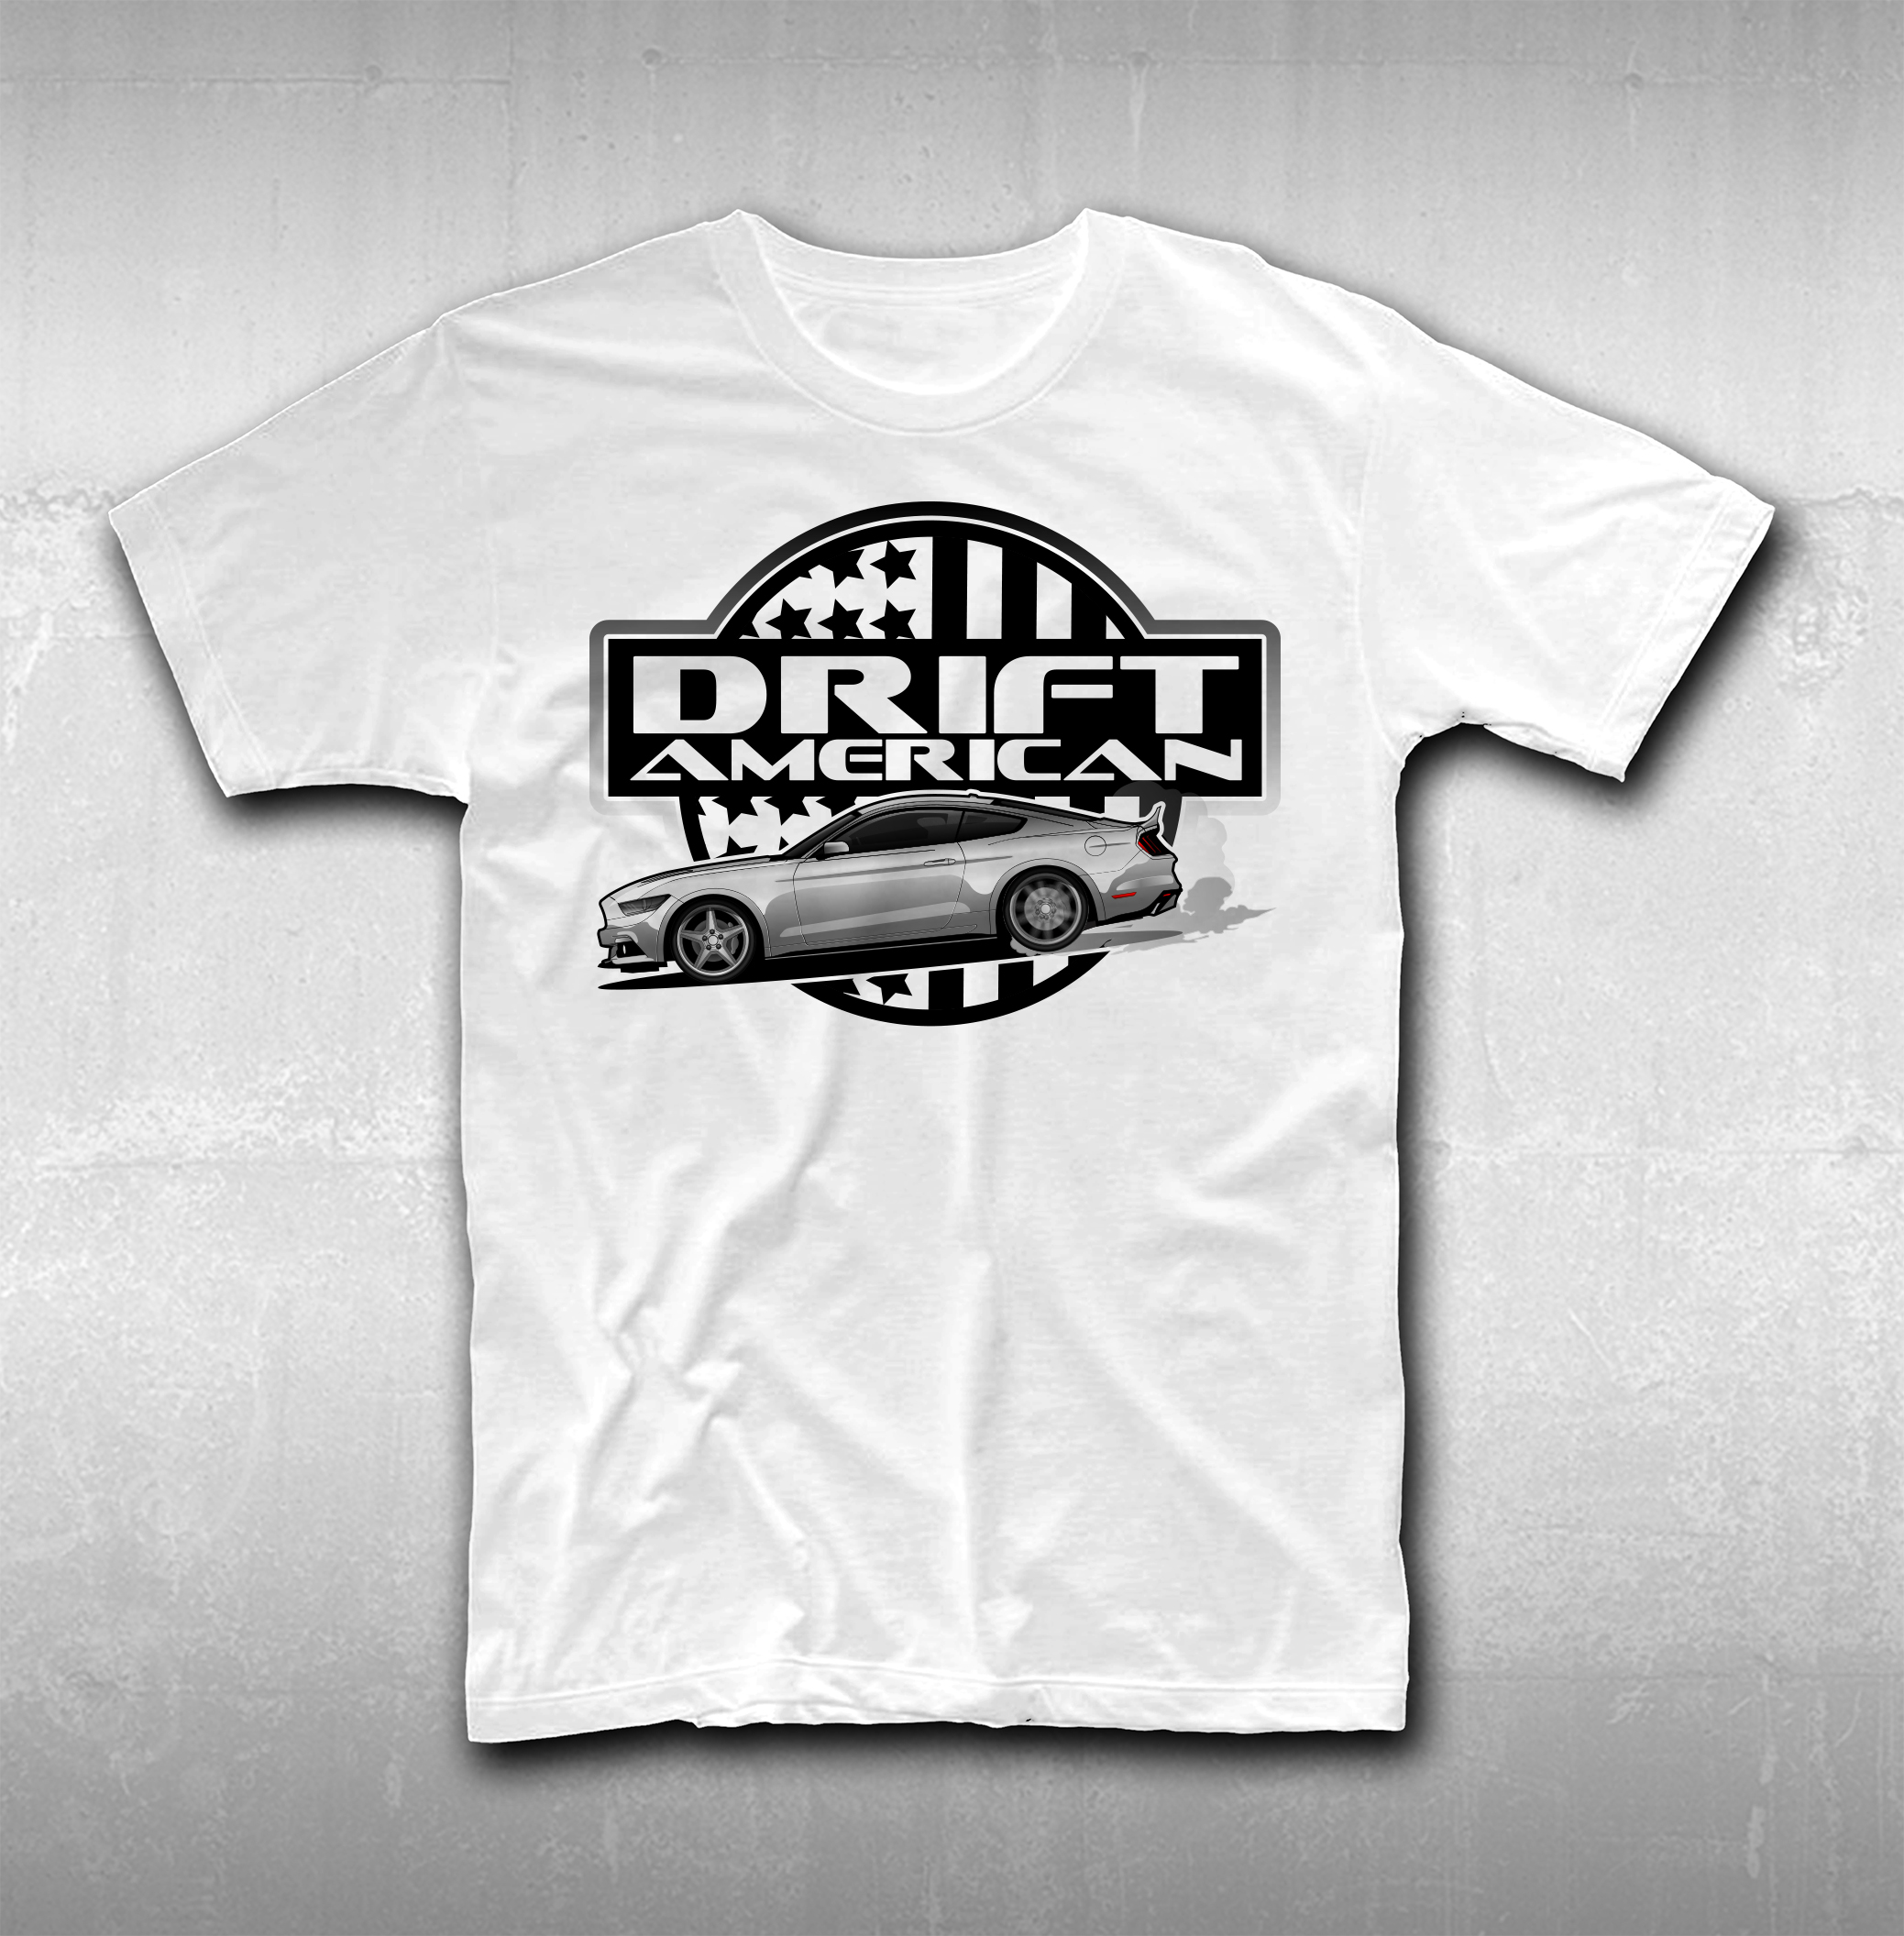 Drift American S550 T Shirt